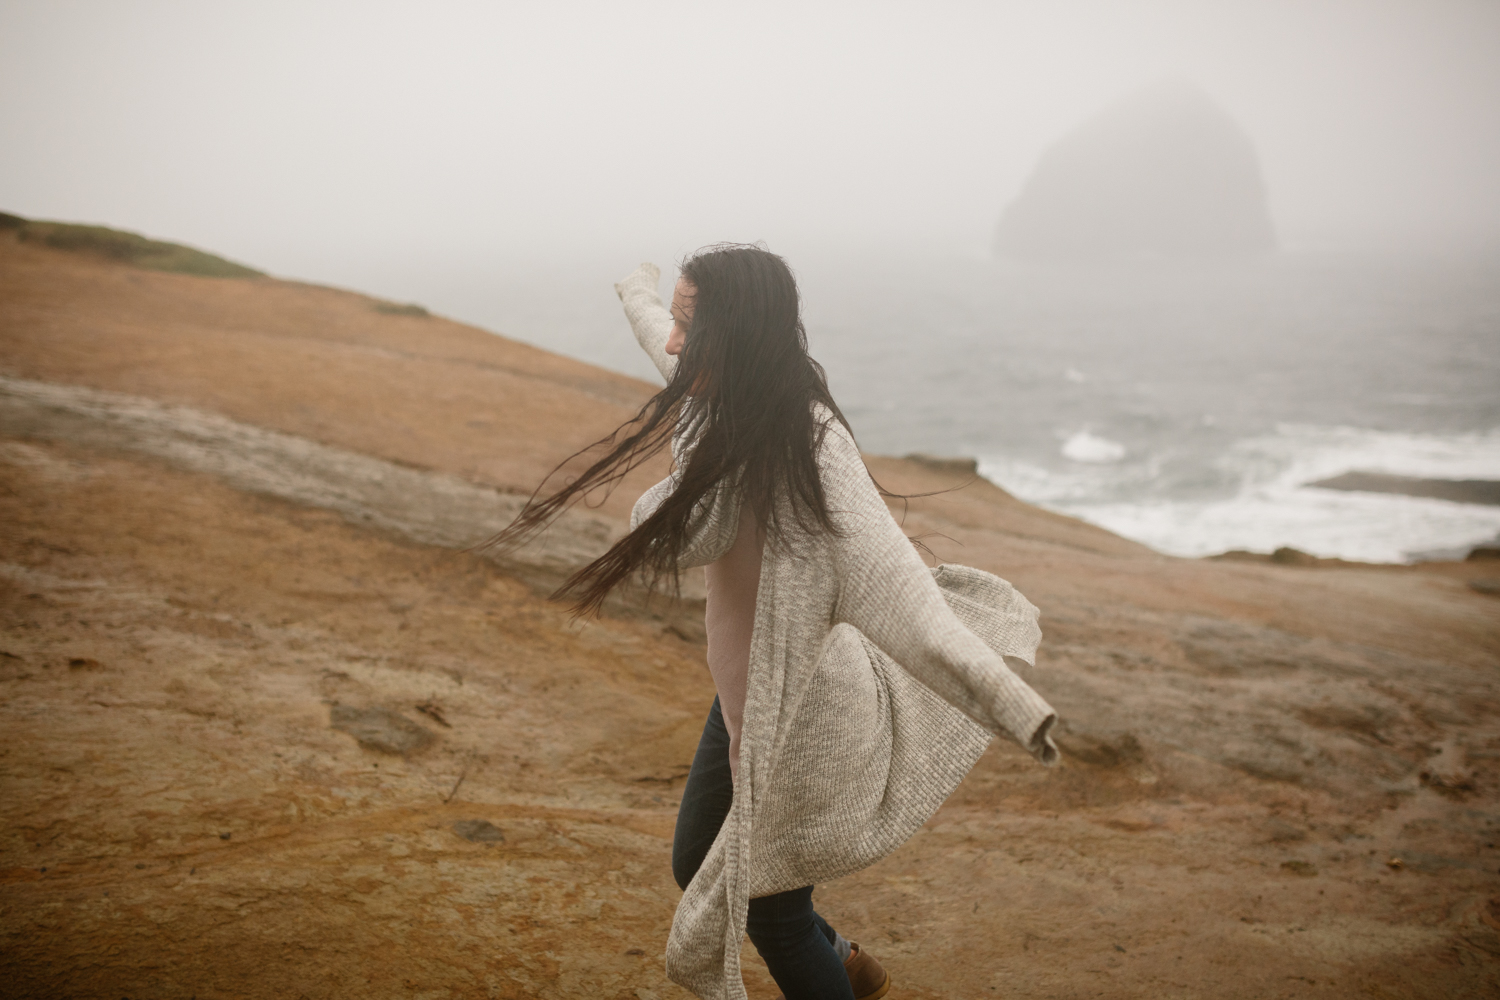 A portrait of young woman with wind blowing through her hair and